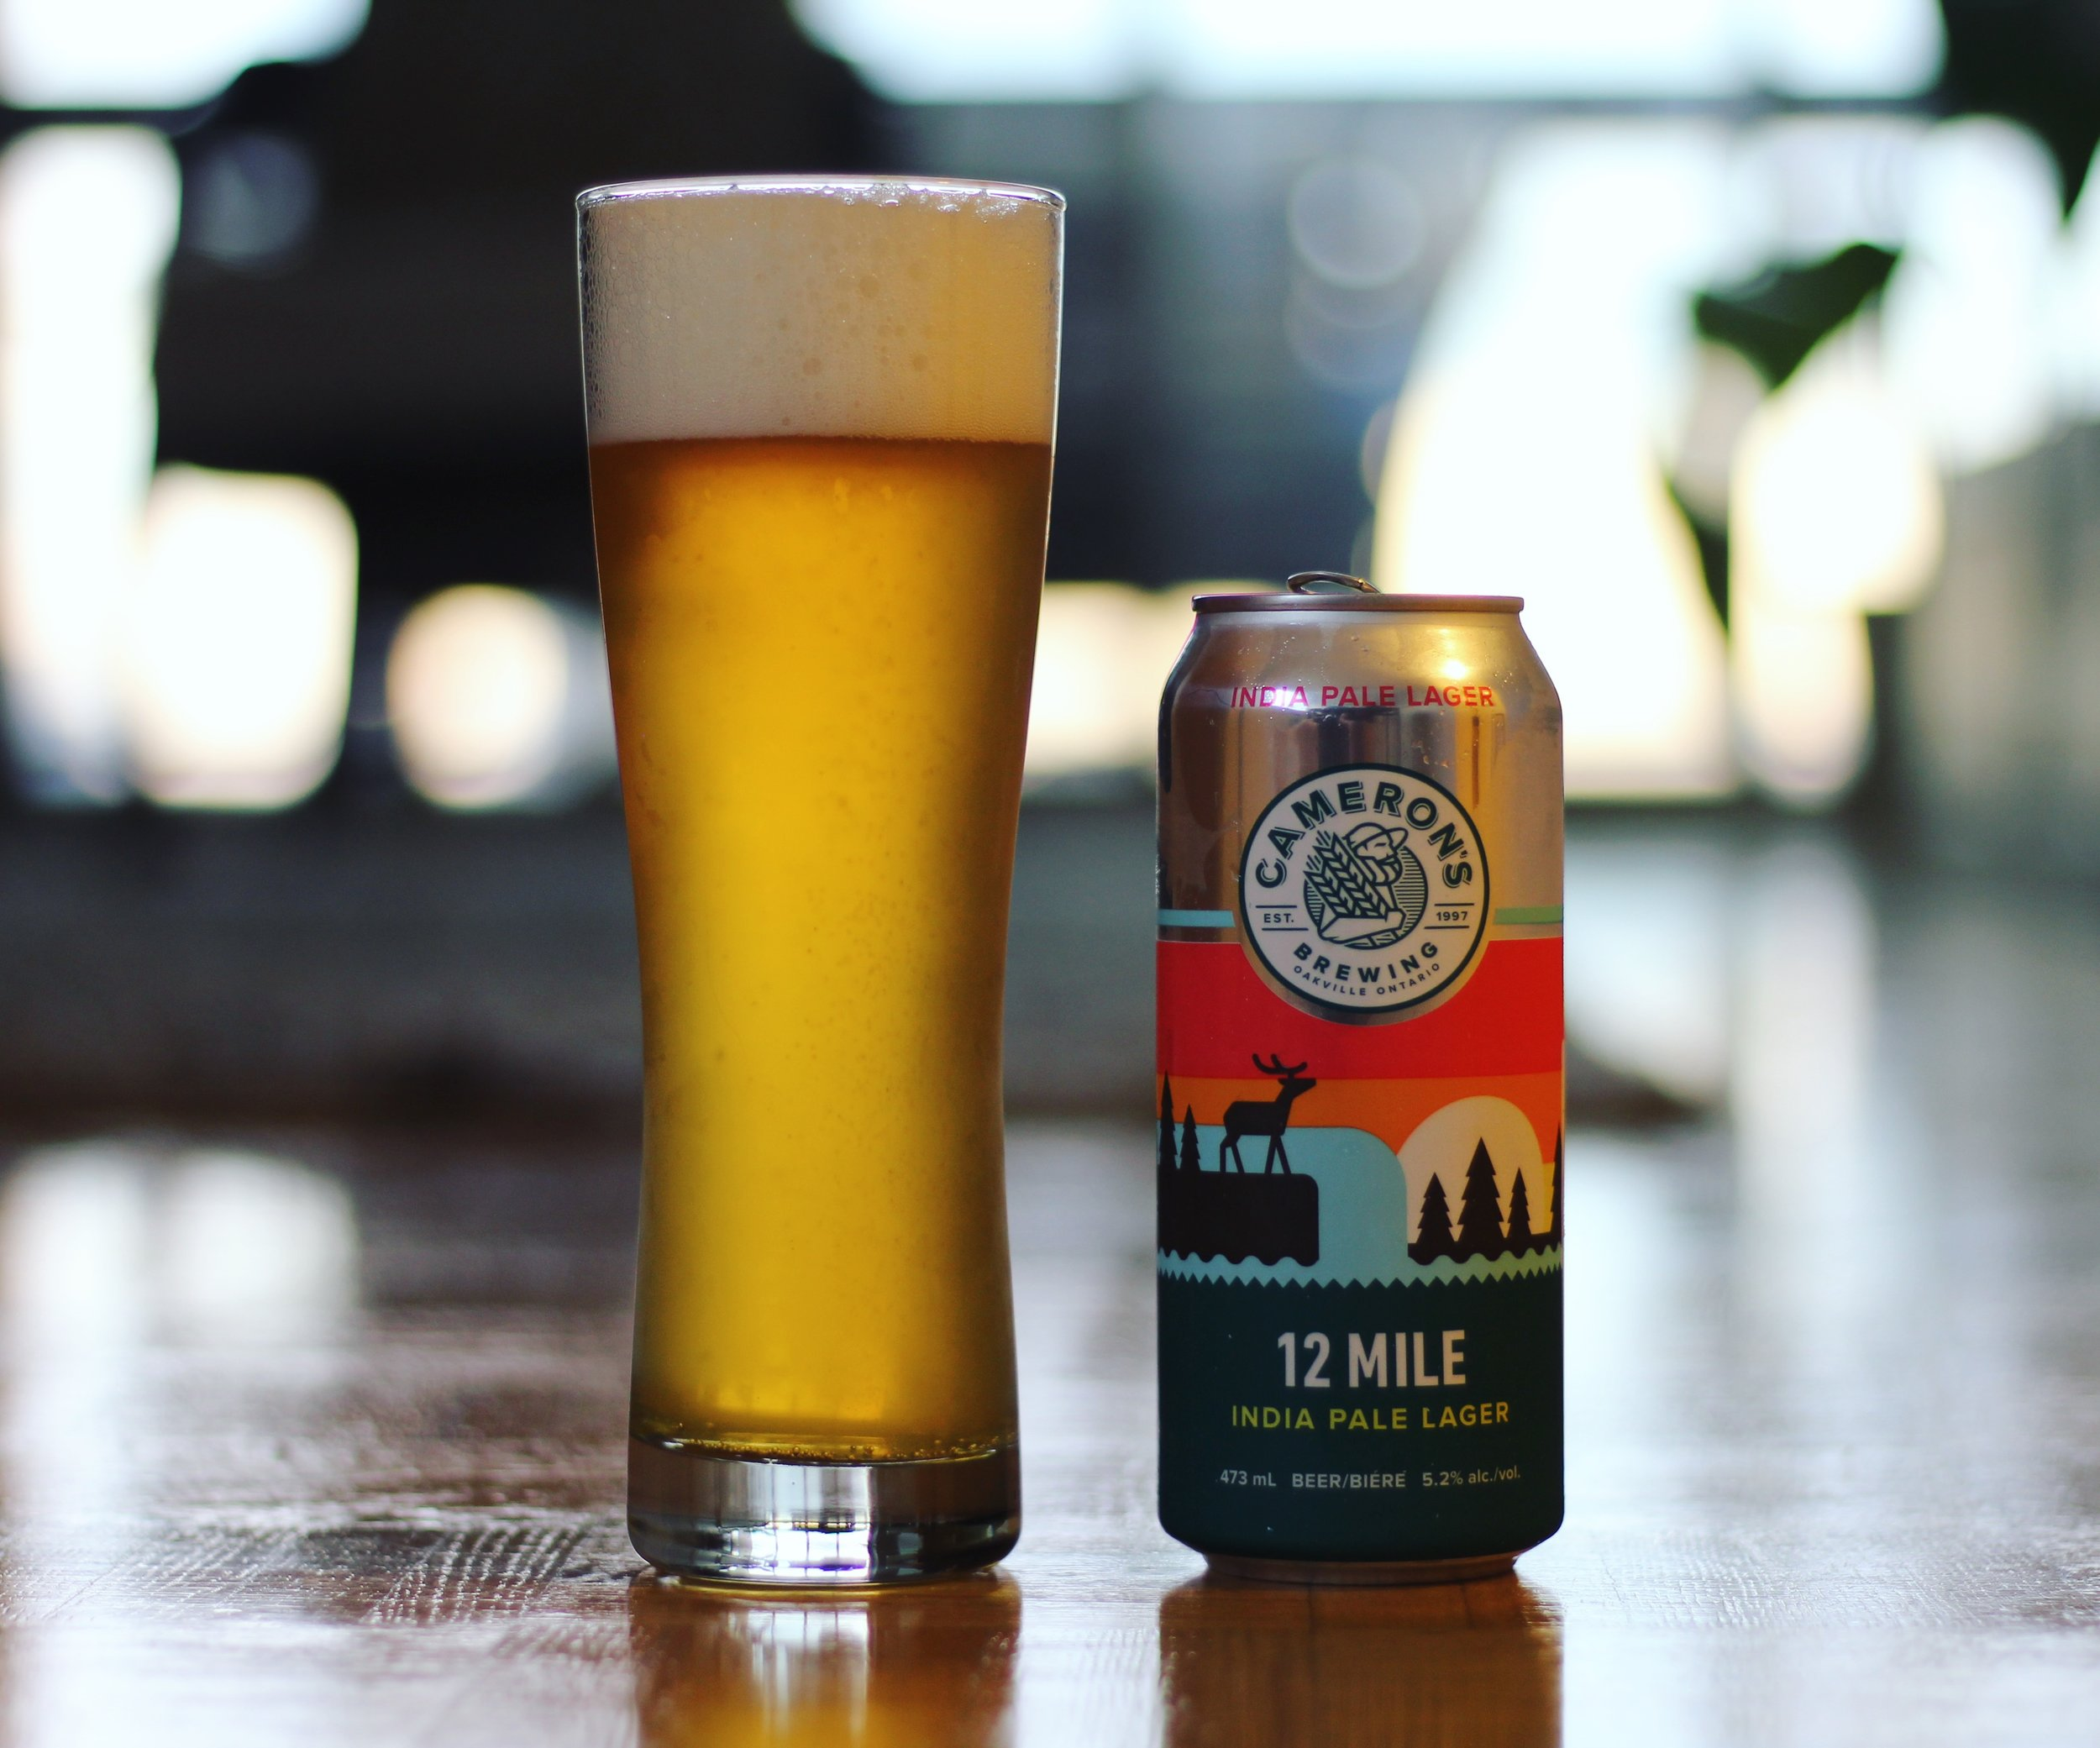 12 Mile India Pale Lager from the fantastic core lineup of  Cameron's Brewing  (Oakville, ON).